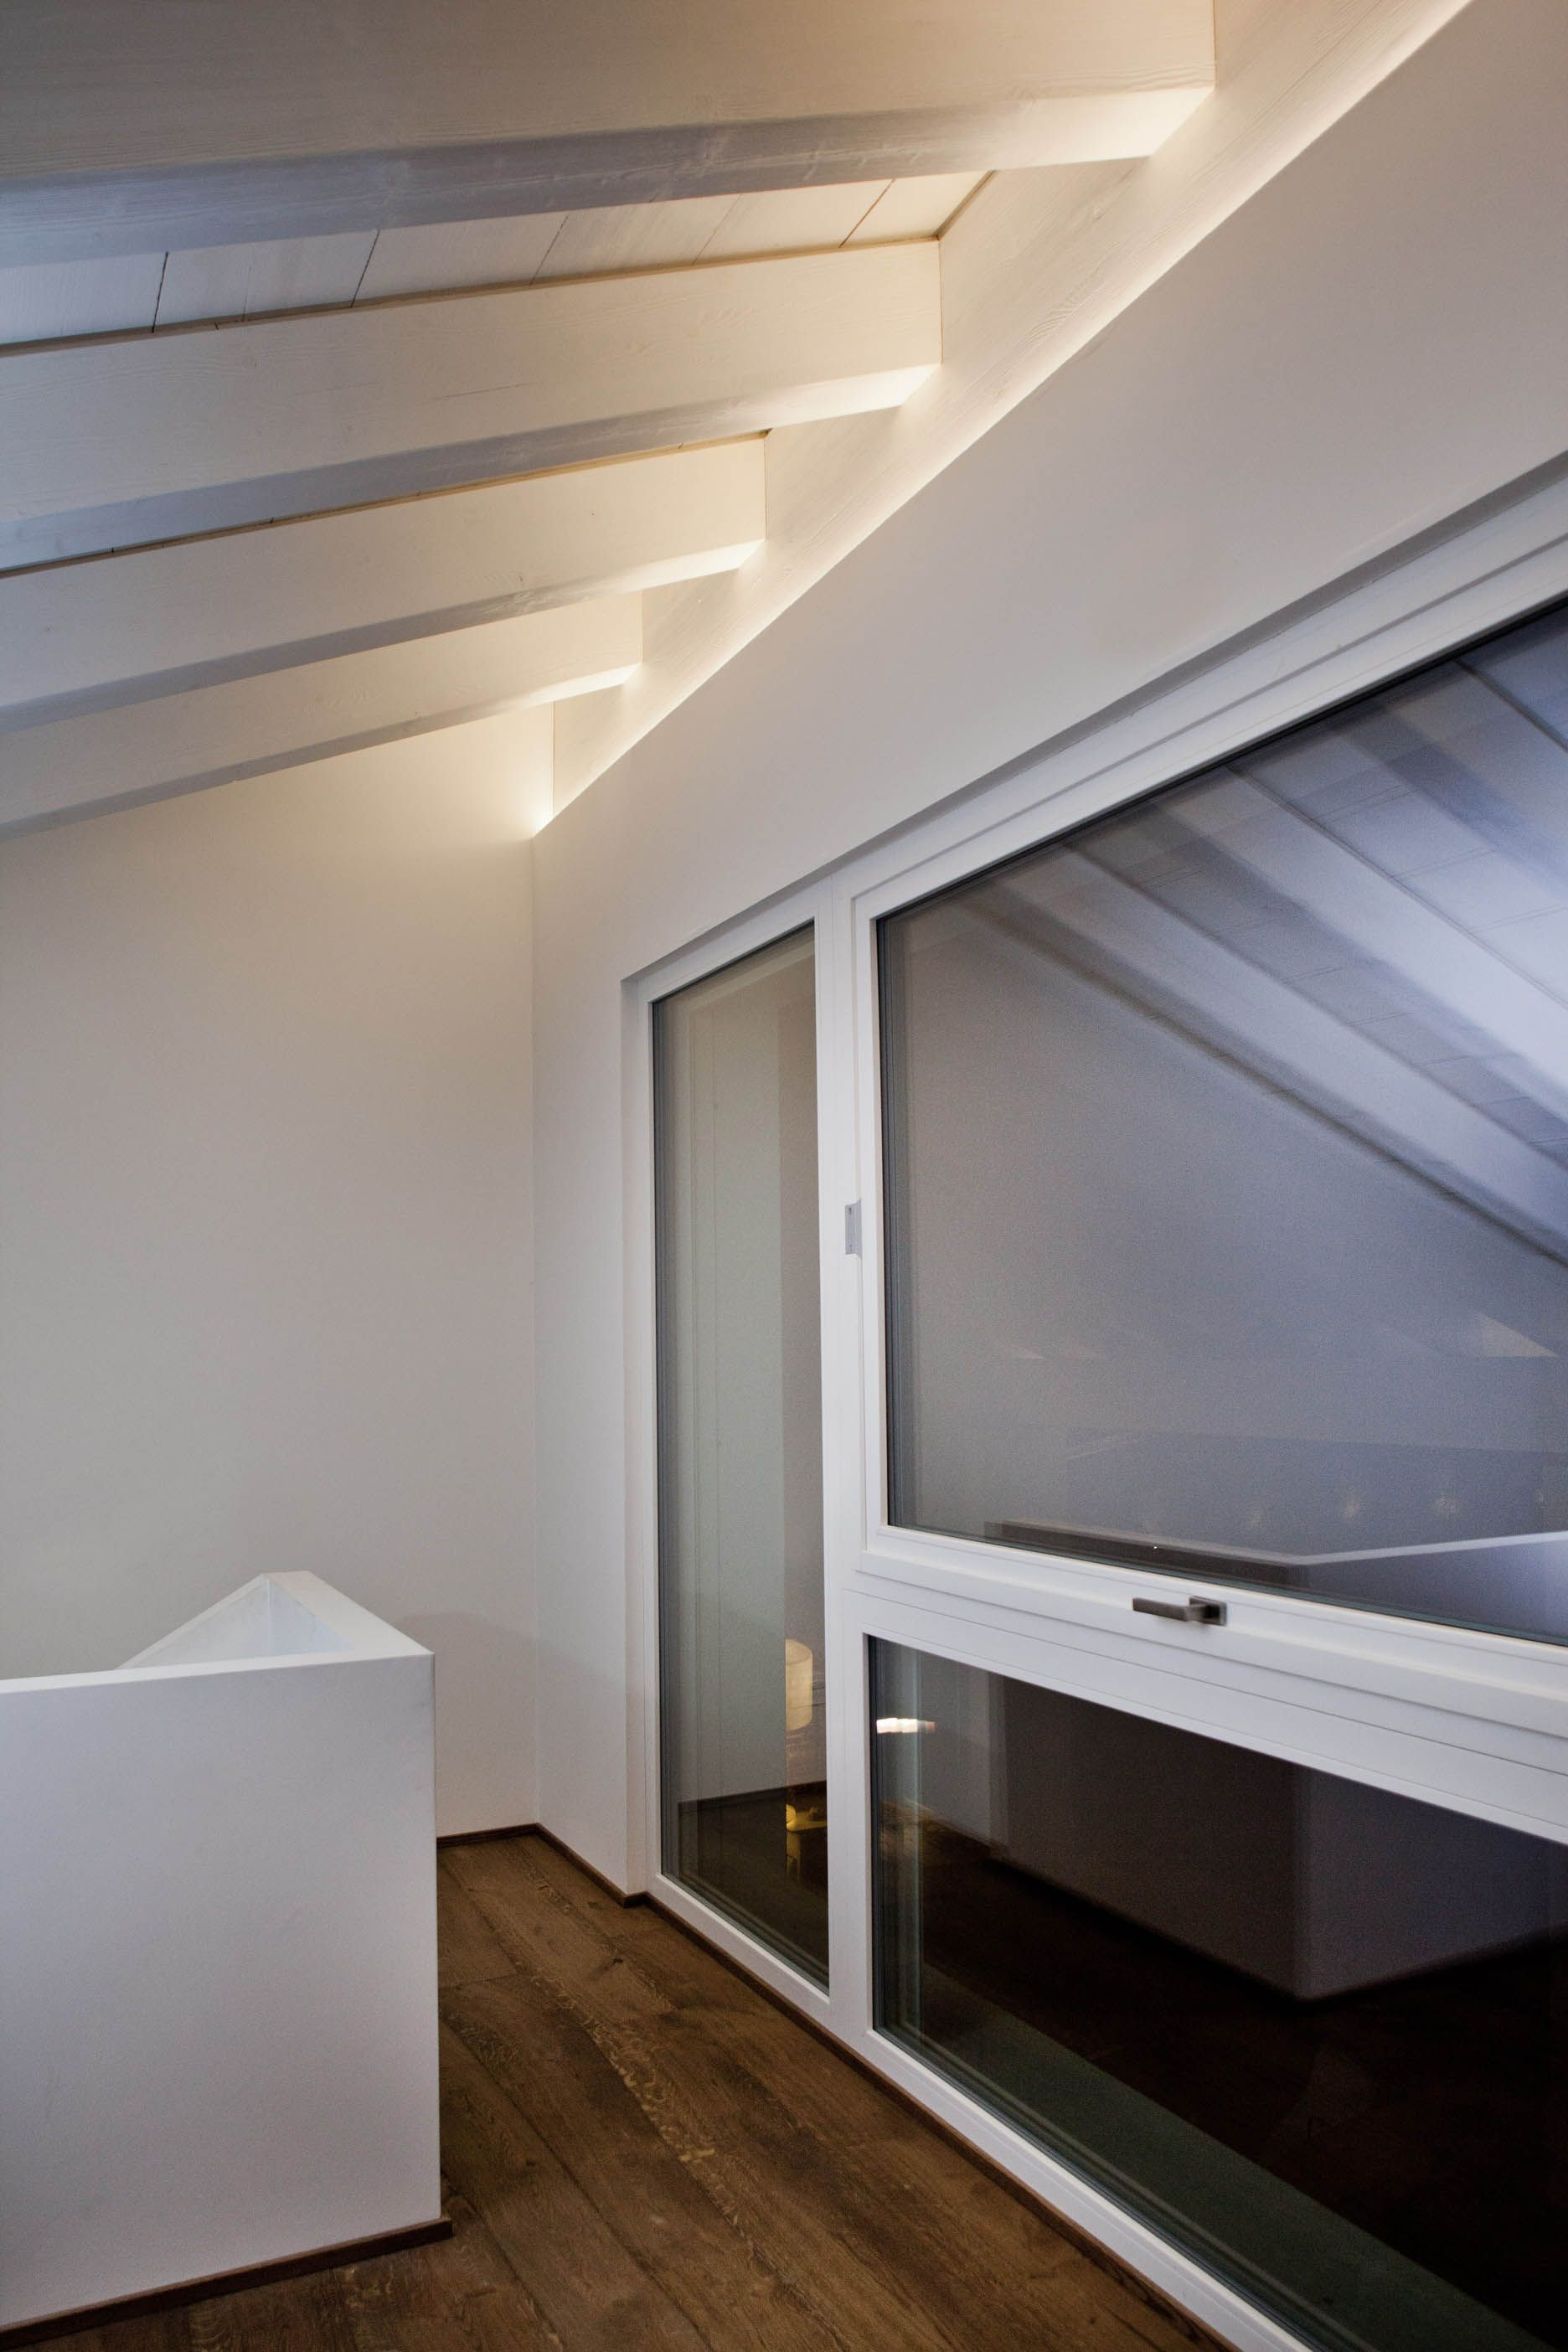 Travi A Vista Illuminazione pin su illuminazione a led di un soffitto con travi a vista